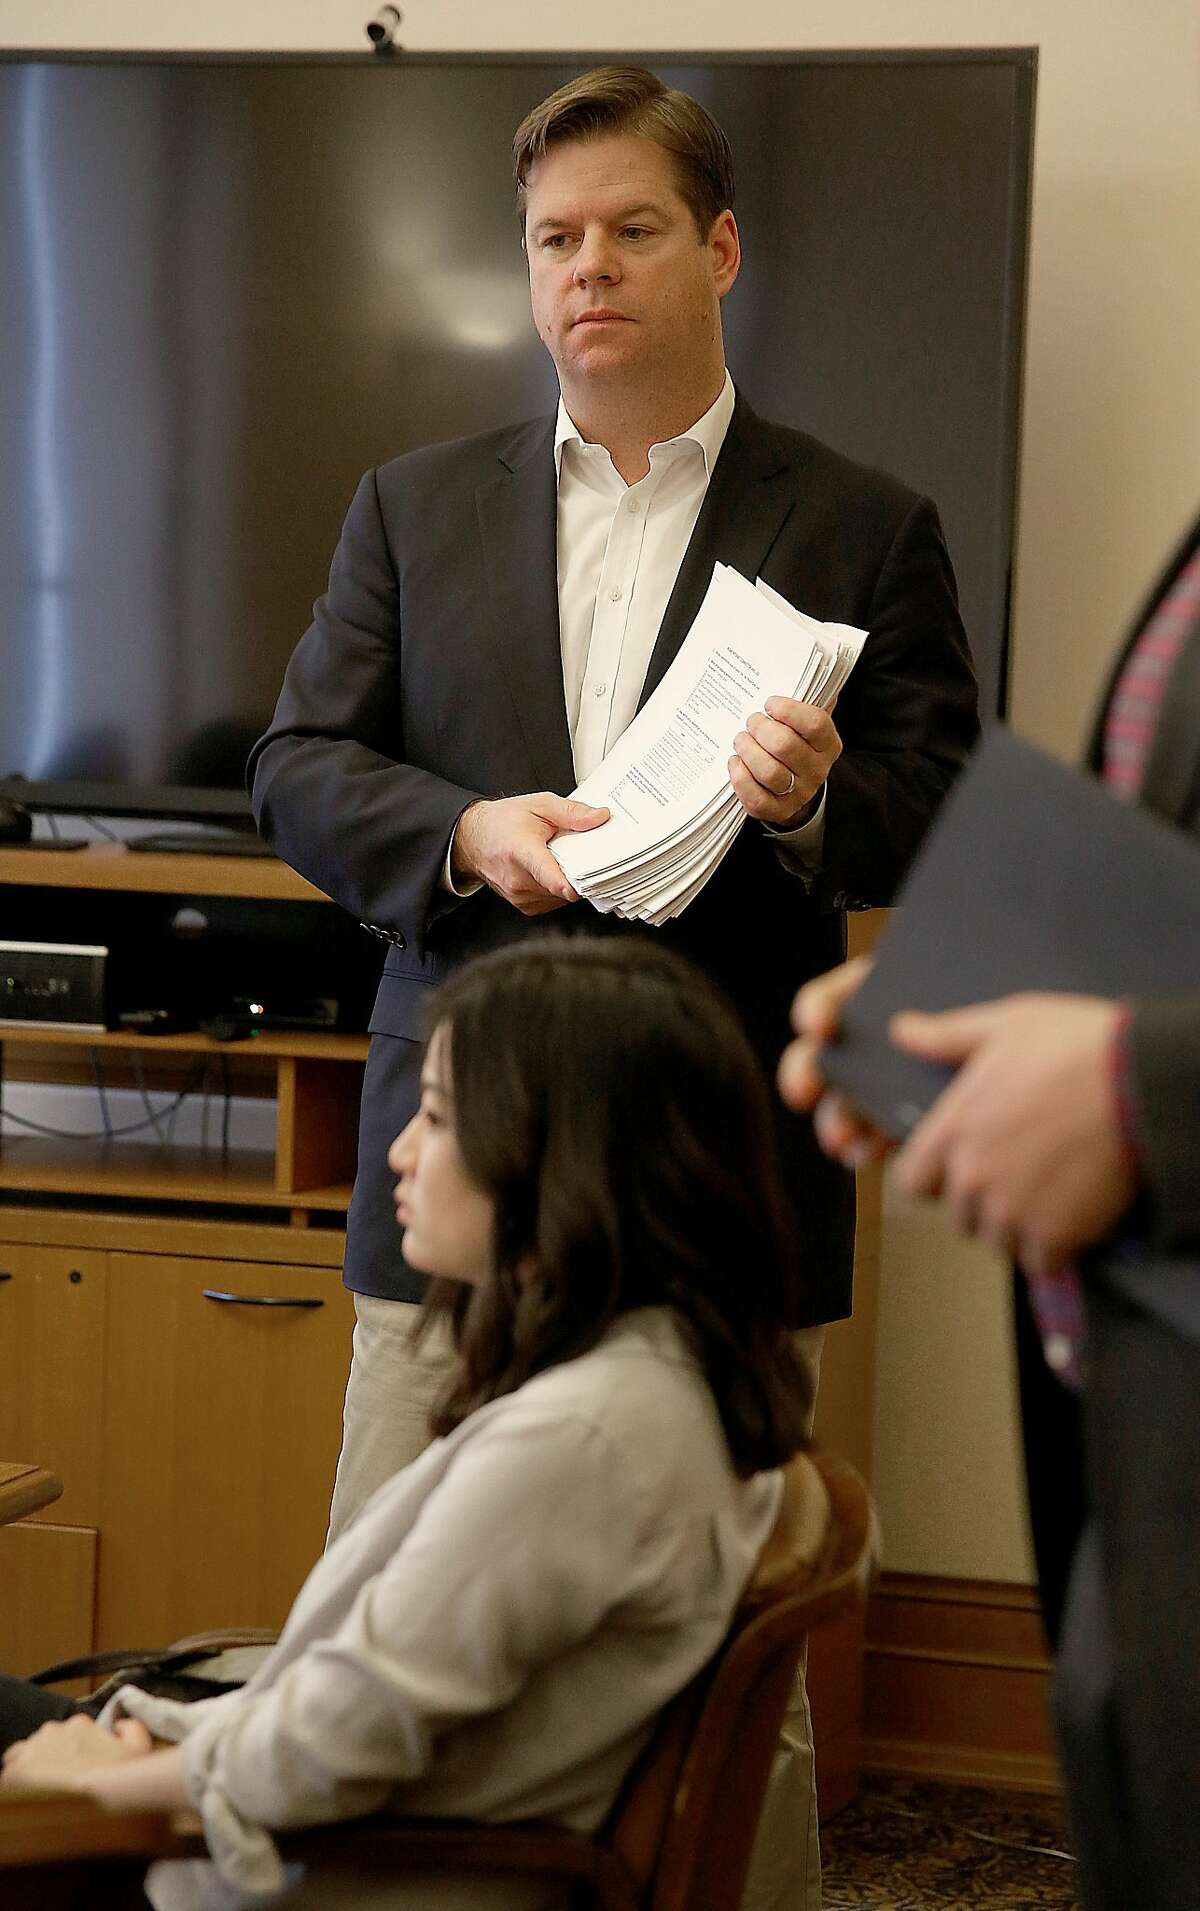 San Francisco supervisor Mark Farrell hands out surveys as he holds a community group meeting to discuss getting the city of San Francisco access to high speed internet at city hall on Tuesday, February 14, 2017, in San Francisco, Calif.